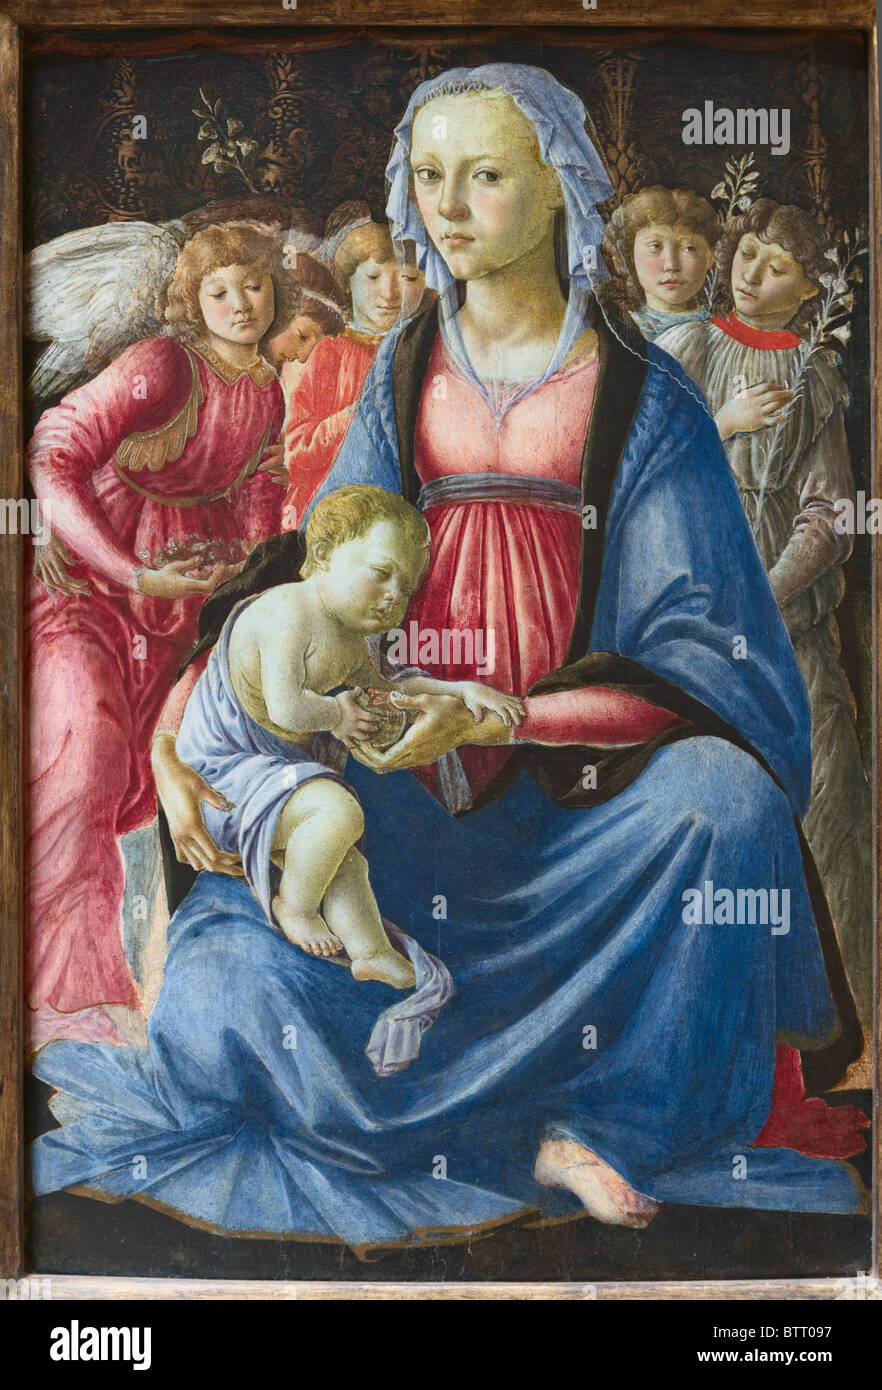 Virgin and Child with Five Angels by Italian painter Sandro Botticelli, Alessandro Filipepi, c. 1470, Louvre Museum Stock Photo